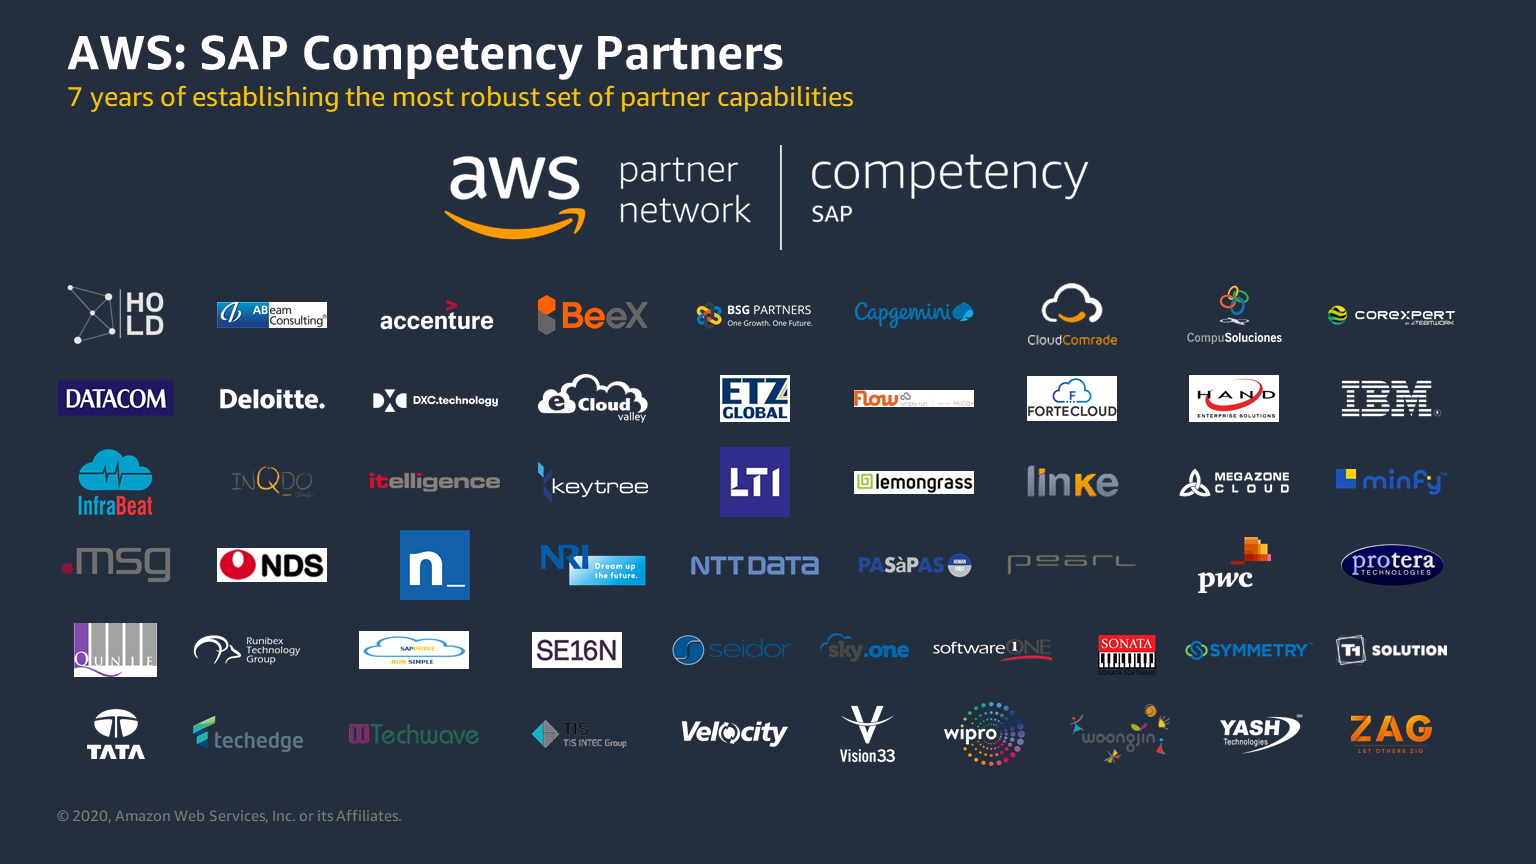 This image shows the logos of more than 55 AWS SAP Competency partners